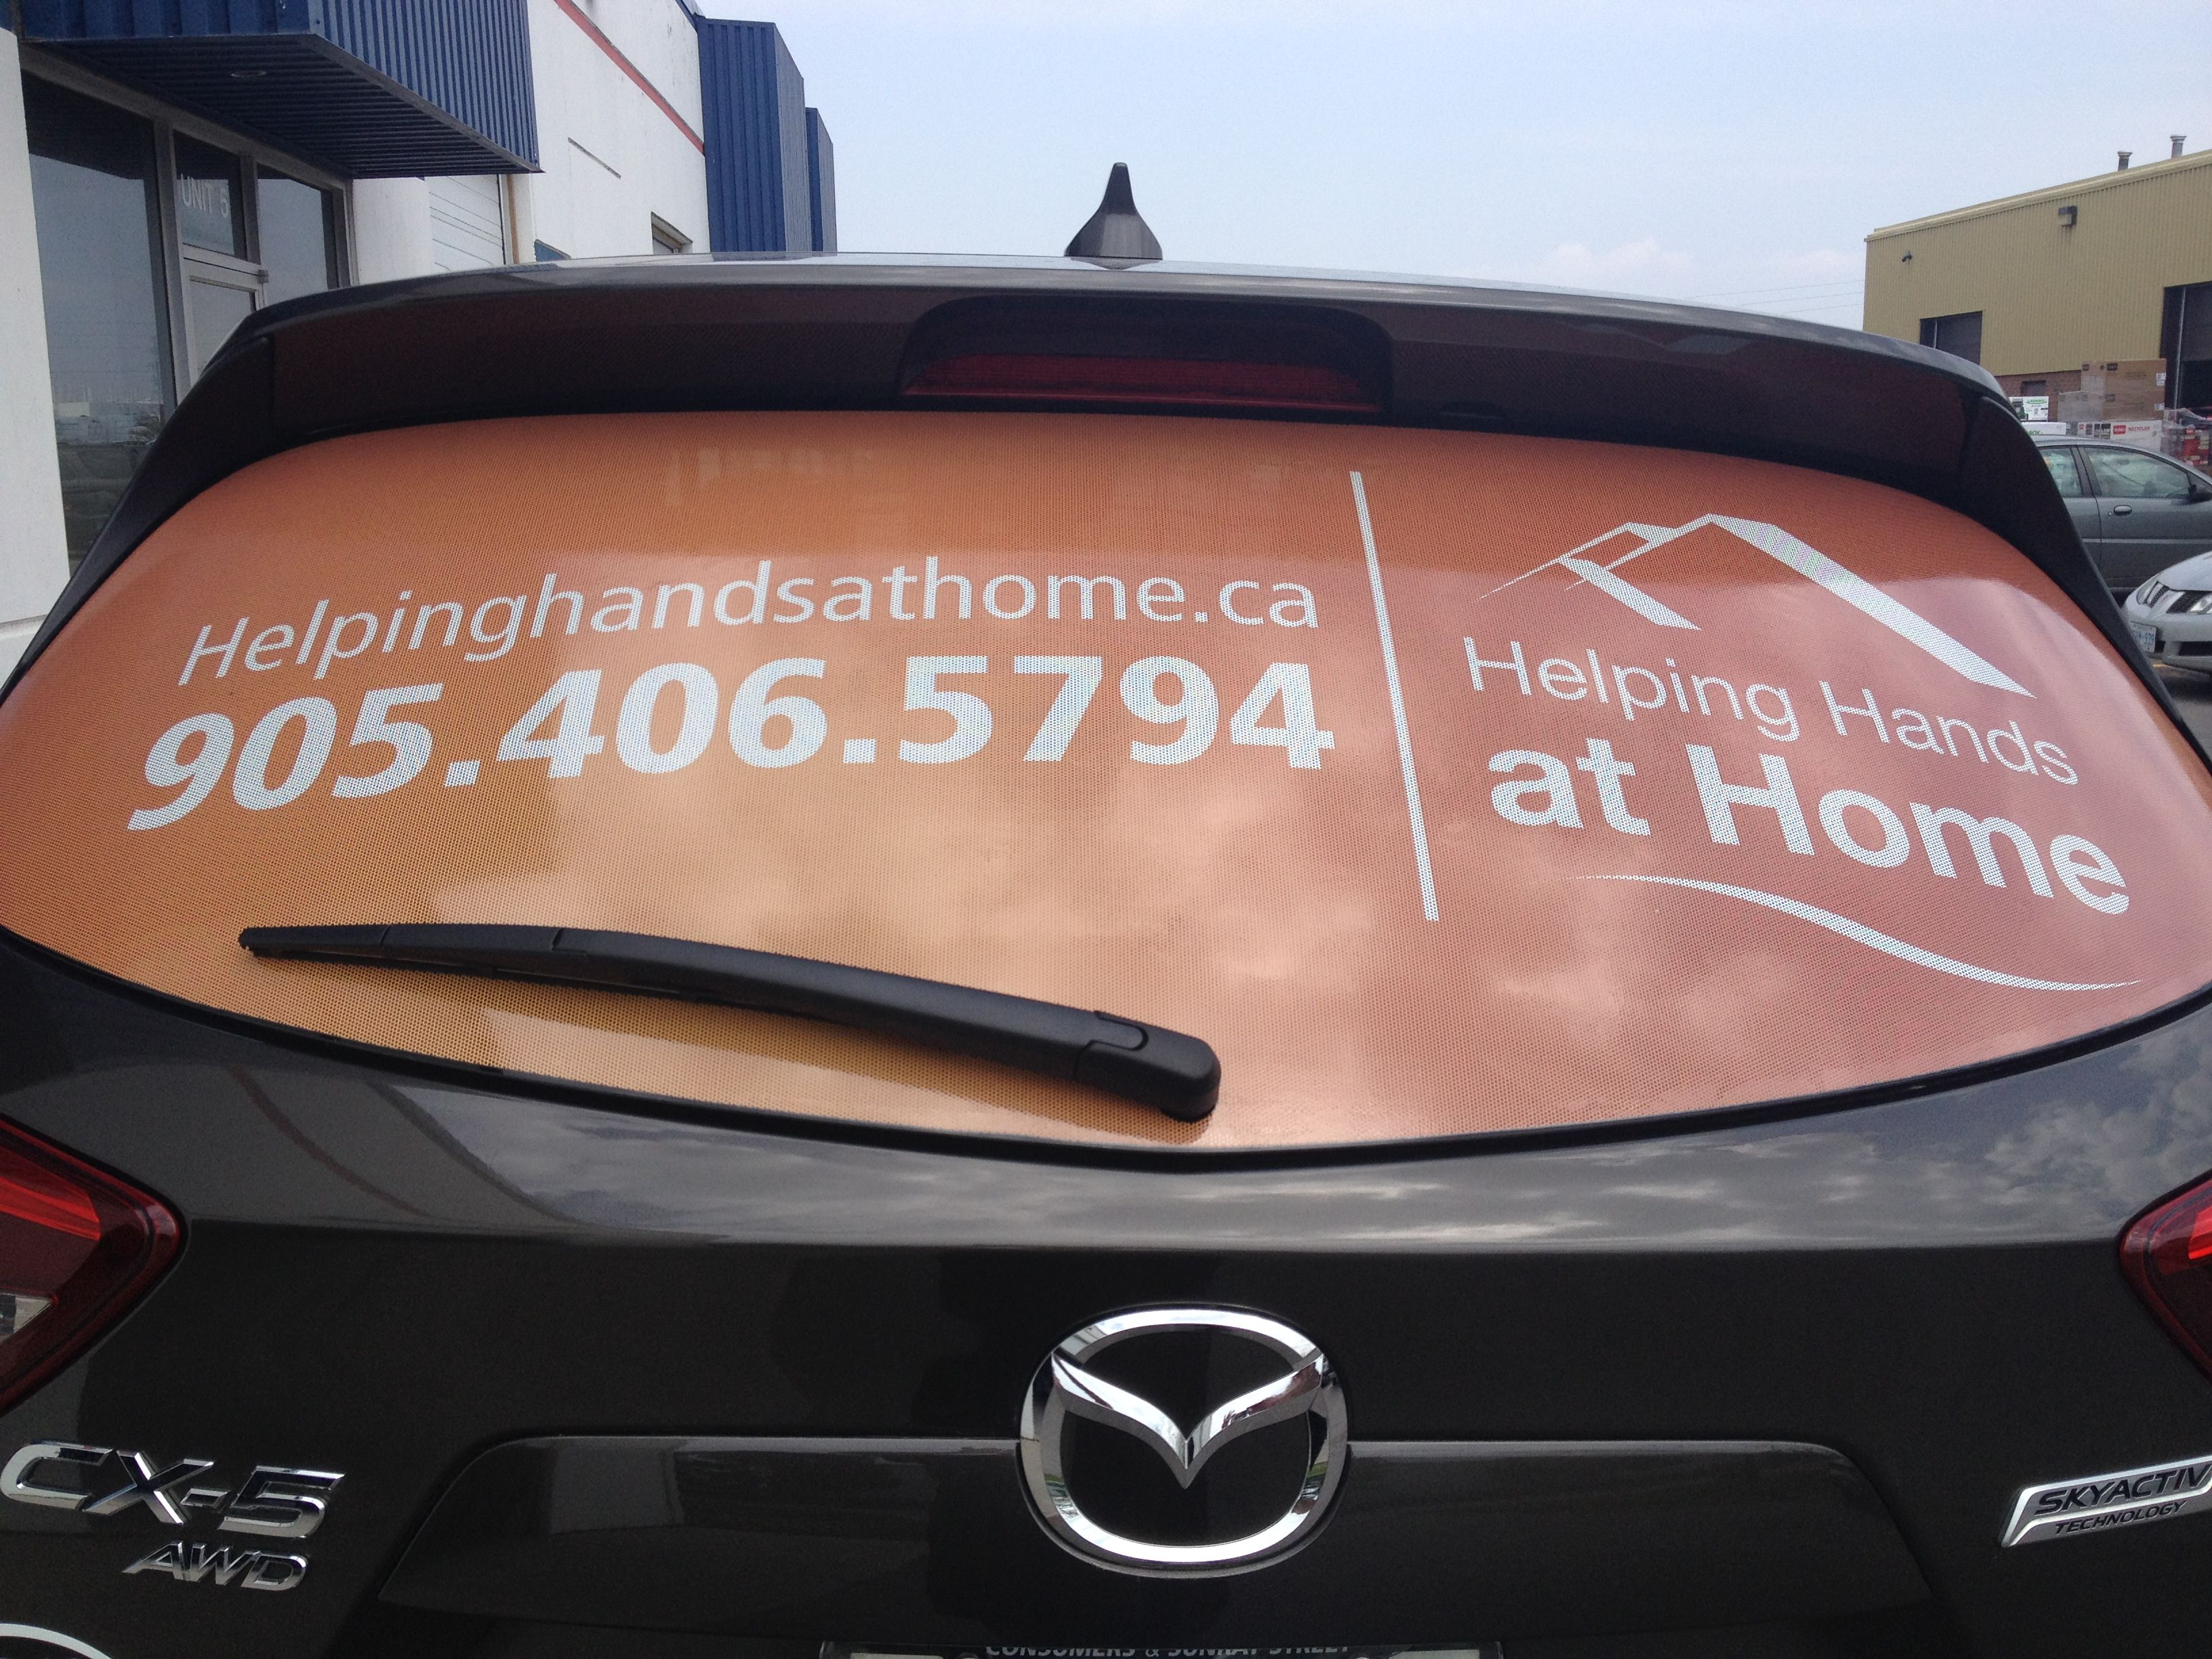 Digital Print Perforated Vinyl Rear Window Graphics For Helping Hands At Home Vehiclegraphics Www Speedprodurham Window Graphics Car Graphics Digital Prints [ 2448 x 3264 Pixel ]